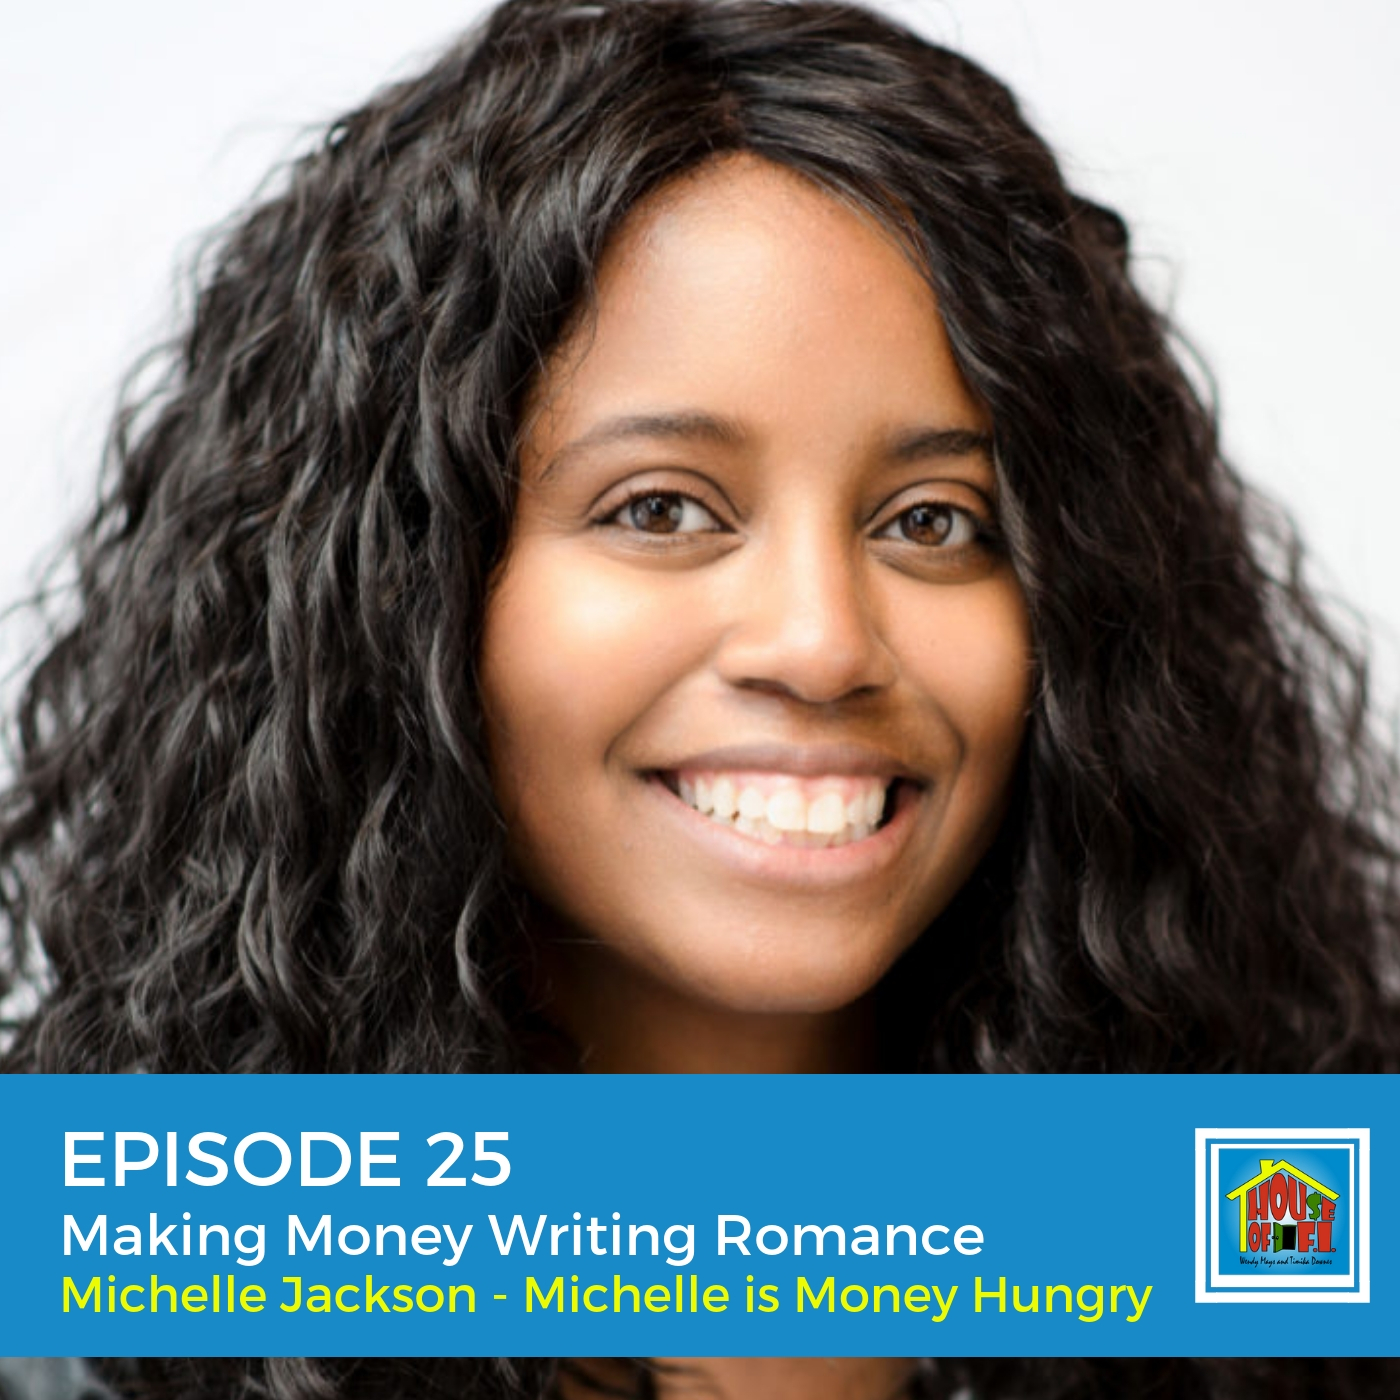 Artwork for Episode 25 - How to Make Thousands with Romance Novels and 5 Other Ways to Grow Passive Income